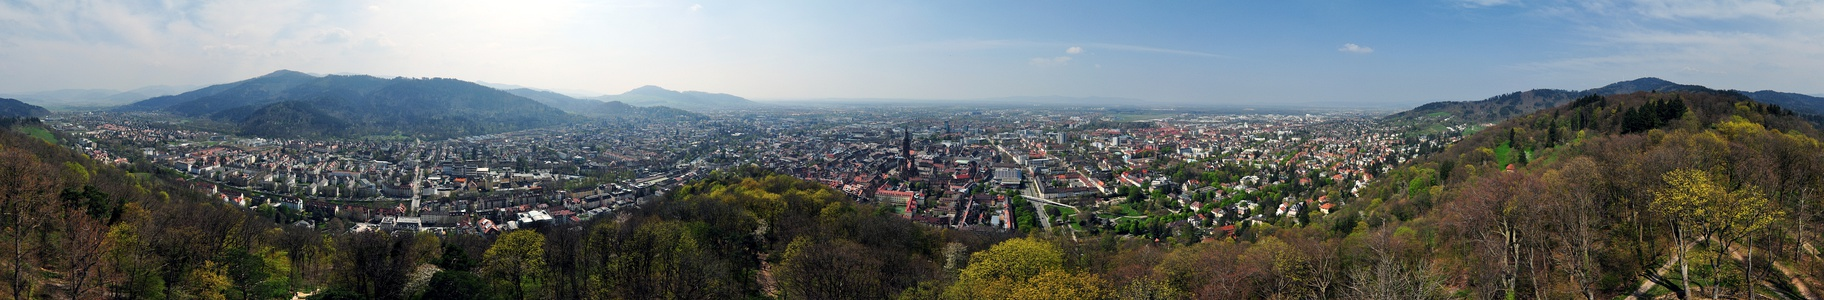 Panoramic view of Freiburg, seen from Schlossberg, Freiburg Münster can be seen in the center.